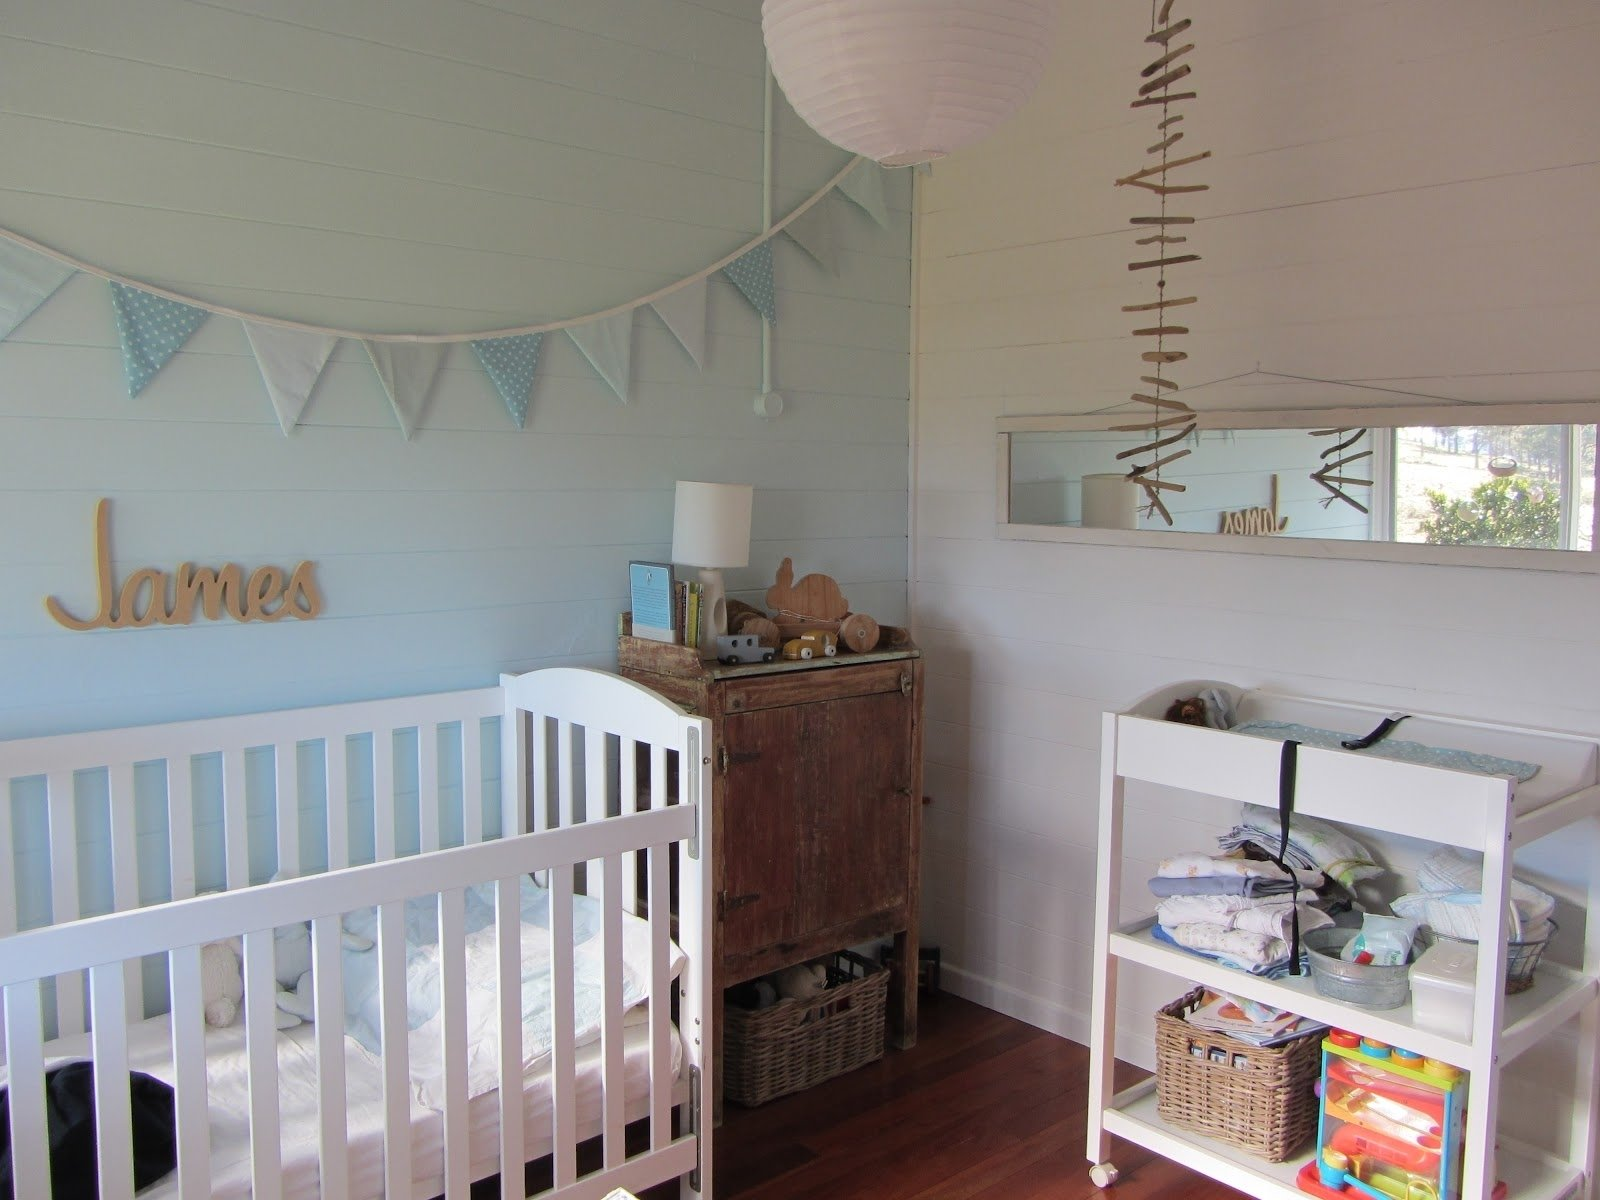 10 Unique Baby Boy Room Decor Ideas baby boy room designs battey spunch decor ideas of baby bedroom 2020